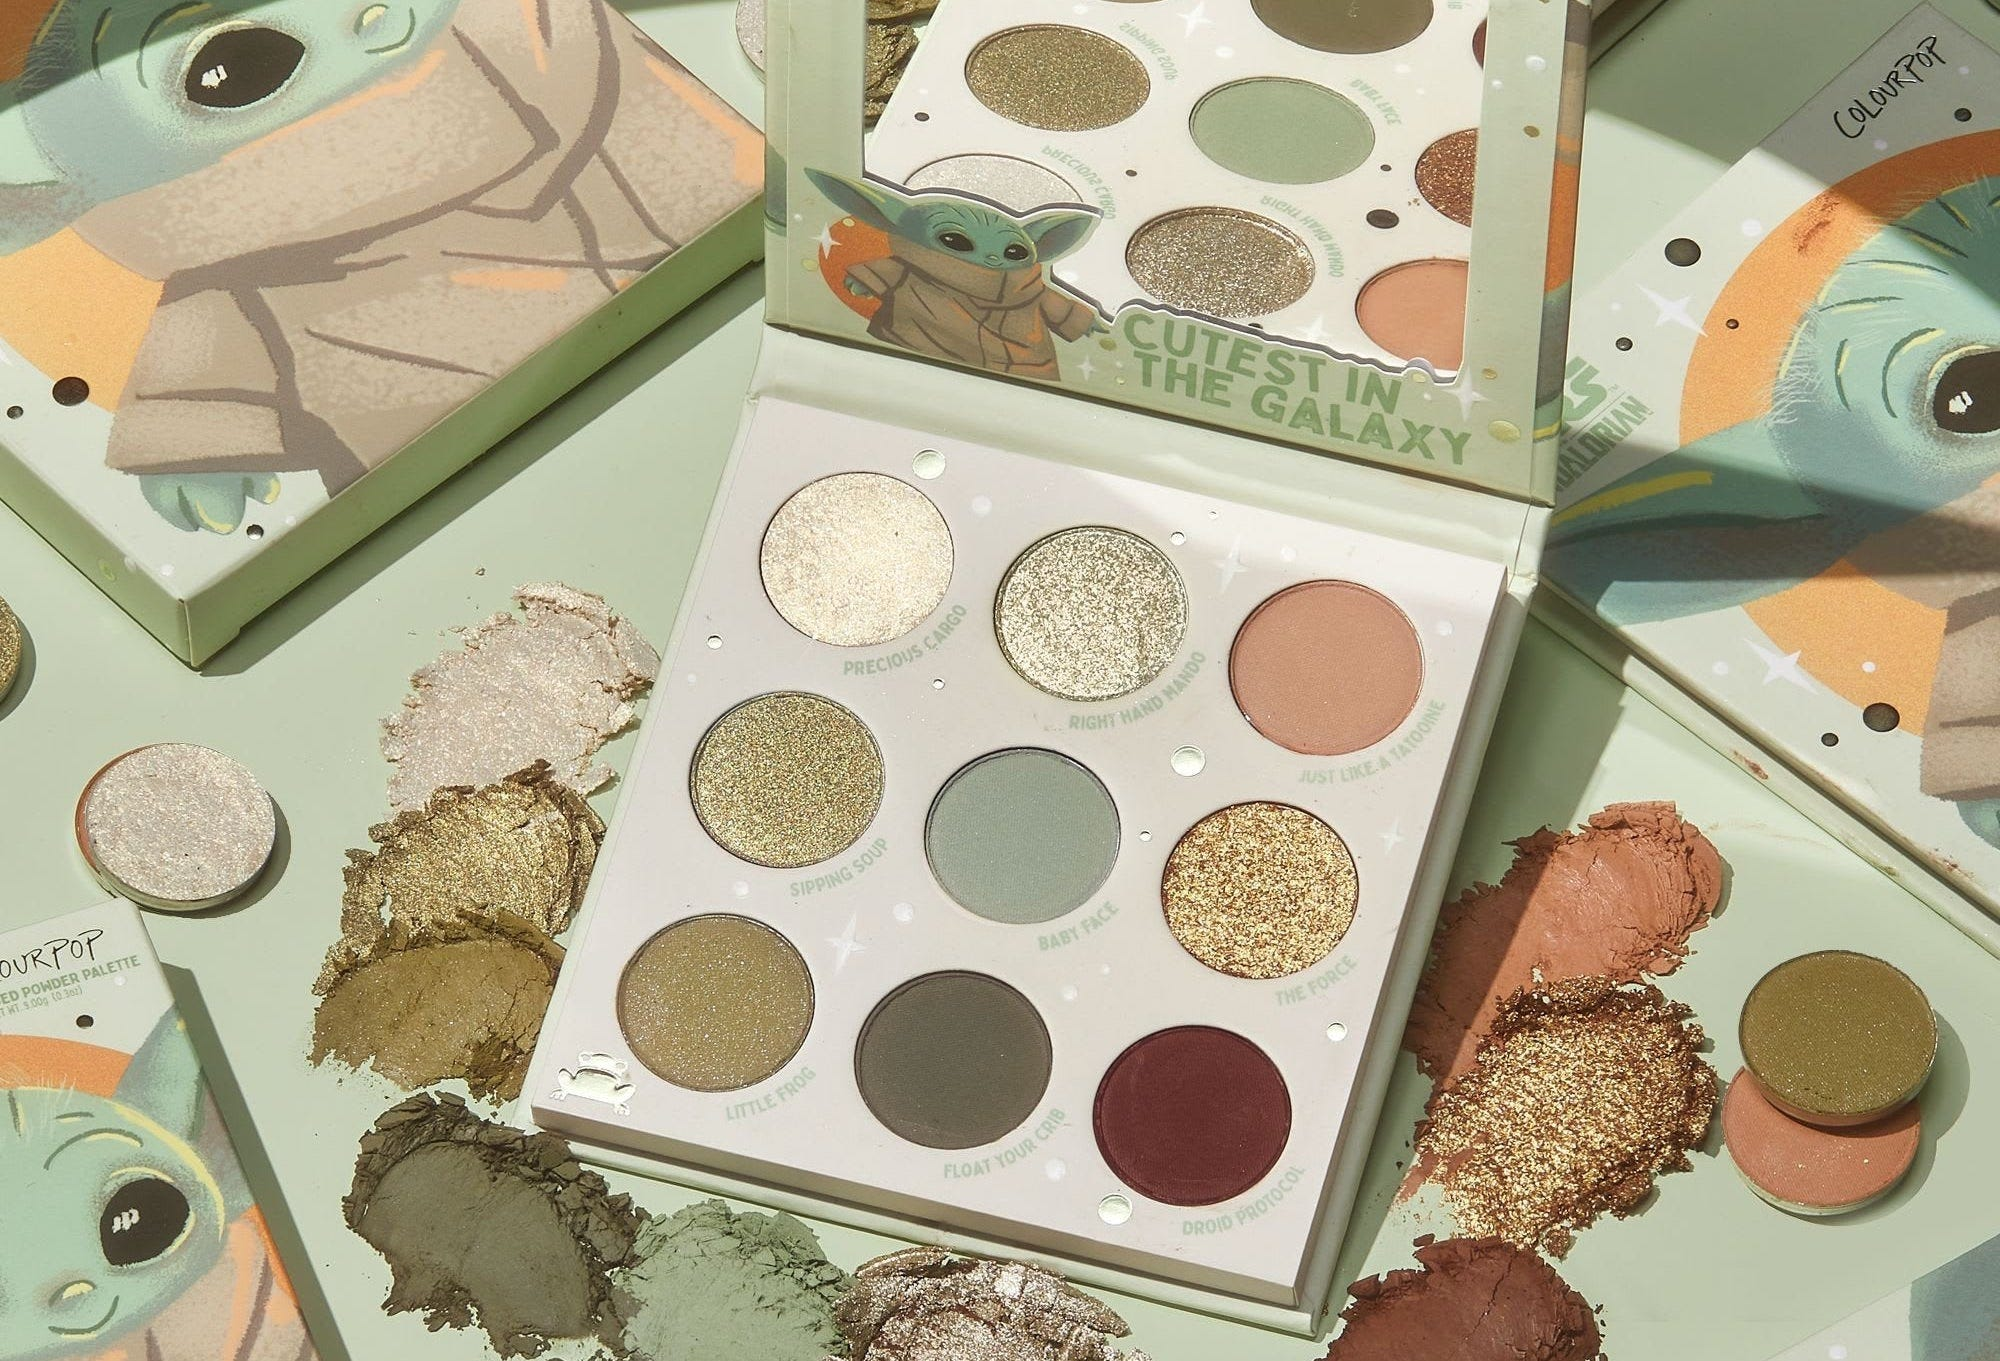 A nine-color eyeshadow palette in greens and golds, surrounded by images of Baby Yoda and piles of eyeshadow powder